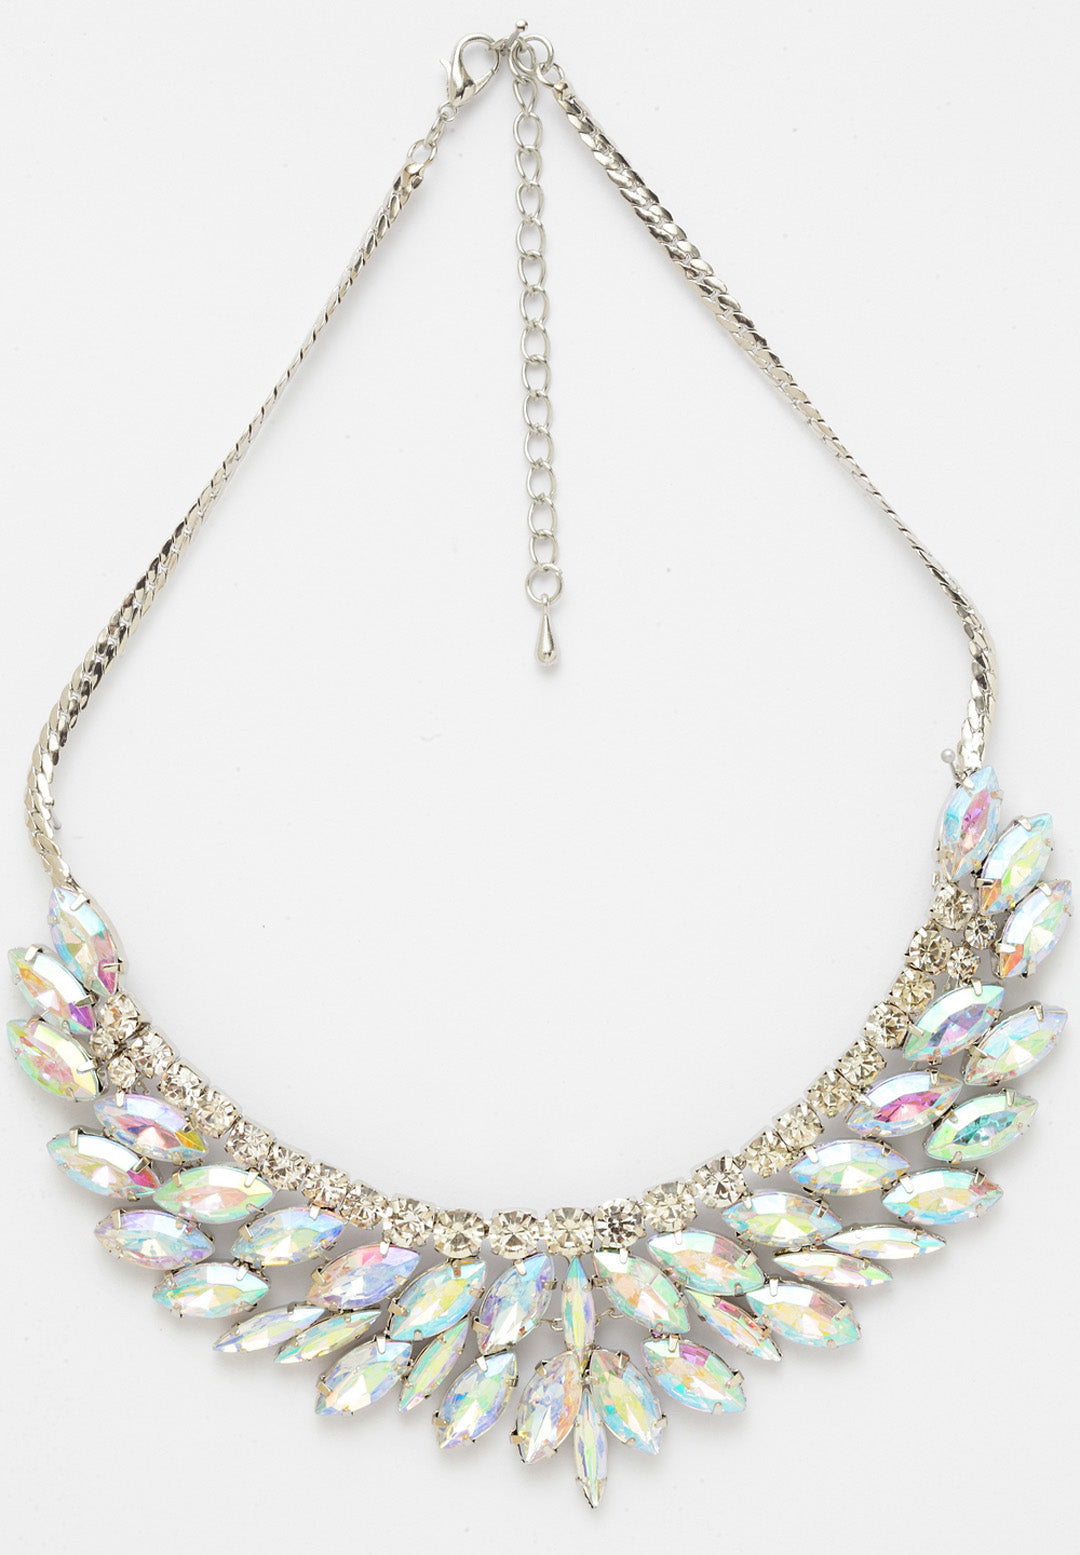 Avant-Garde Paris Elegant Multicolored Crystal Necklace